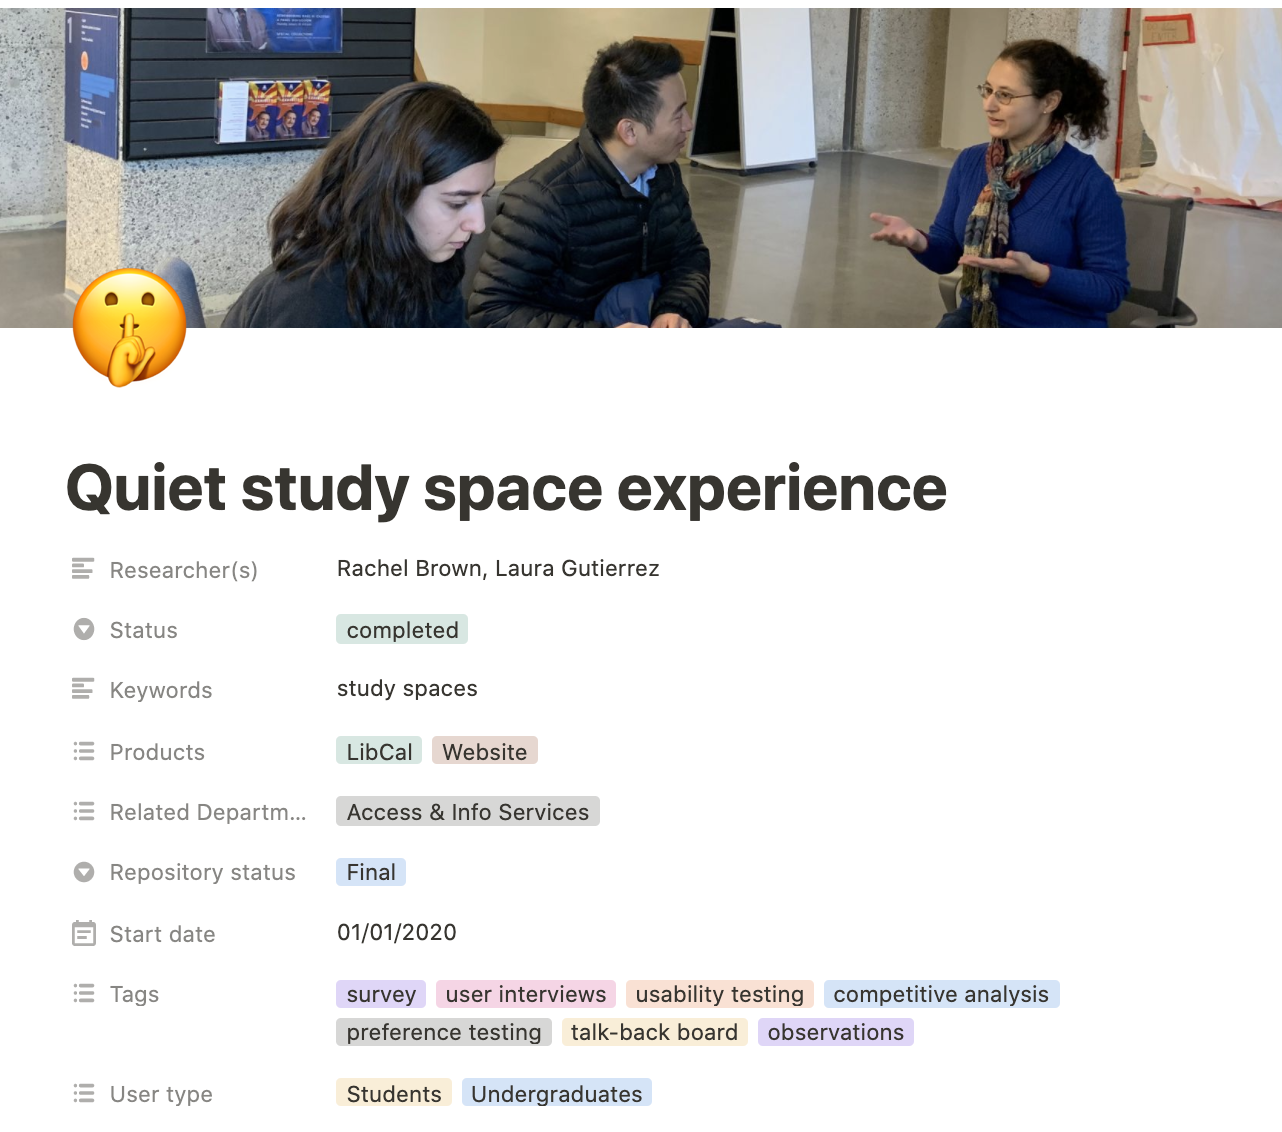 Screenshot of project title Quiet study space experience with list of tags